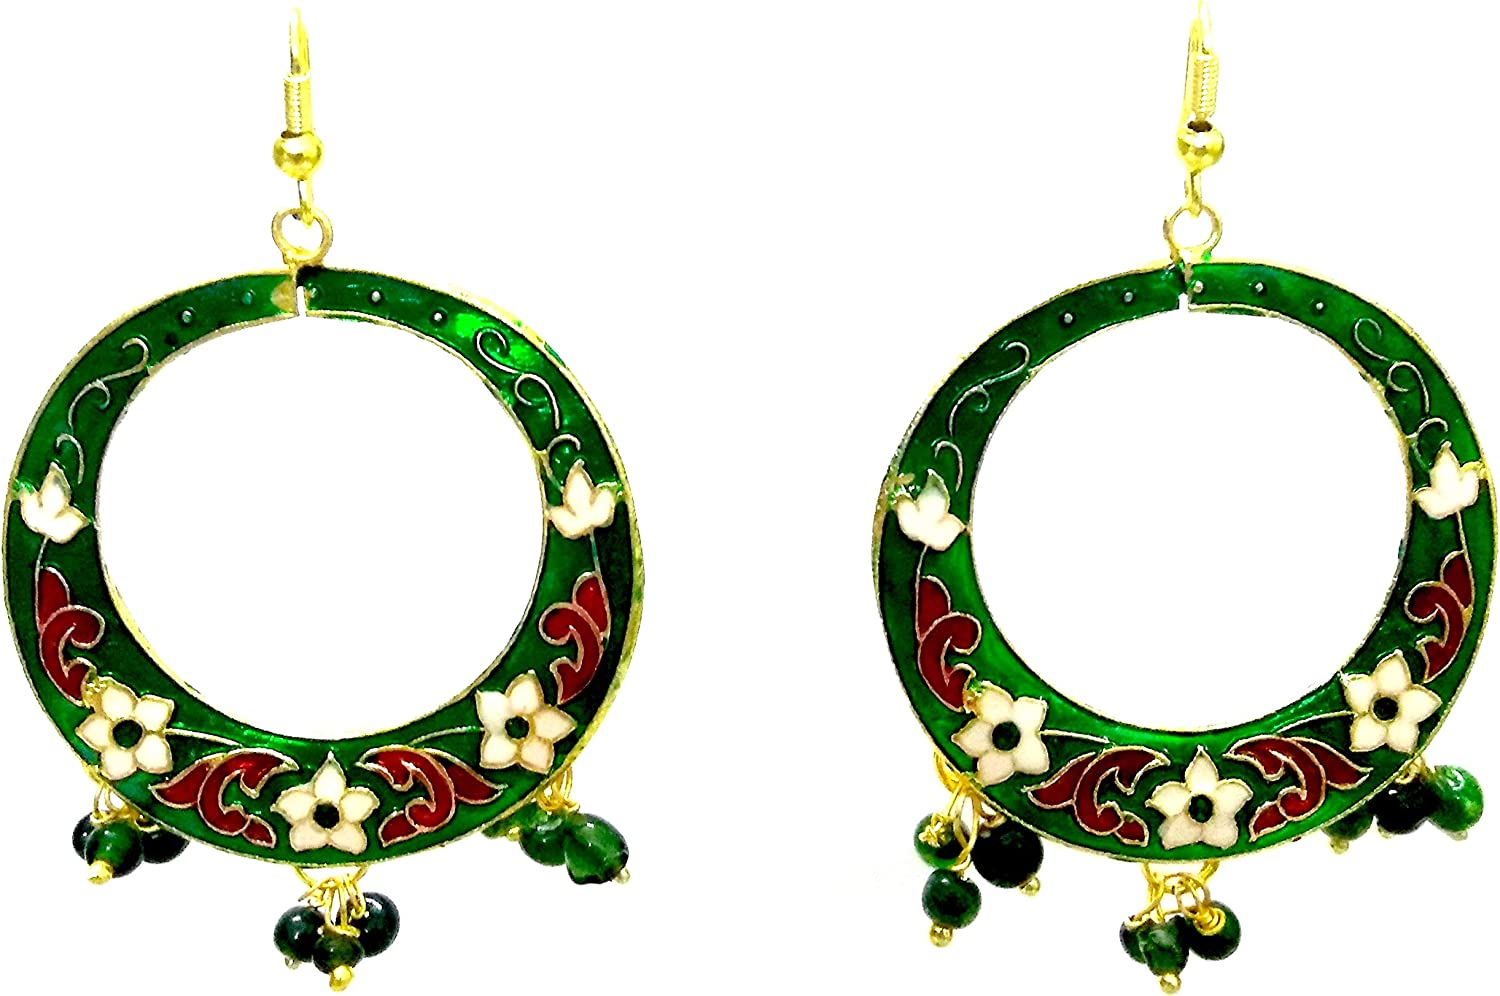 DESI HAWKER Meenakari Minakari Enamel Paint Golden Handmade Earring Bali Jhumki Jhumka Jewelry Afghan Chandbali Indian Drop Dangle Hoop NI-235